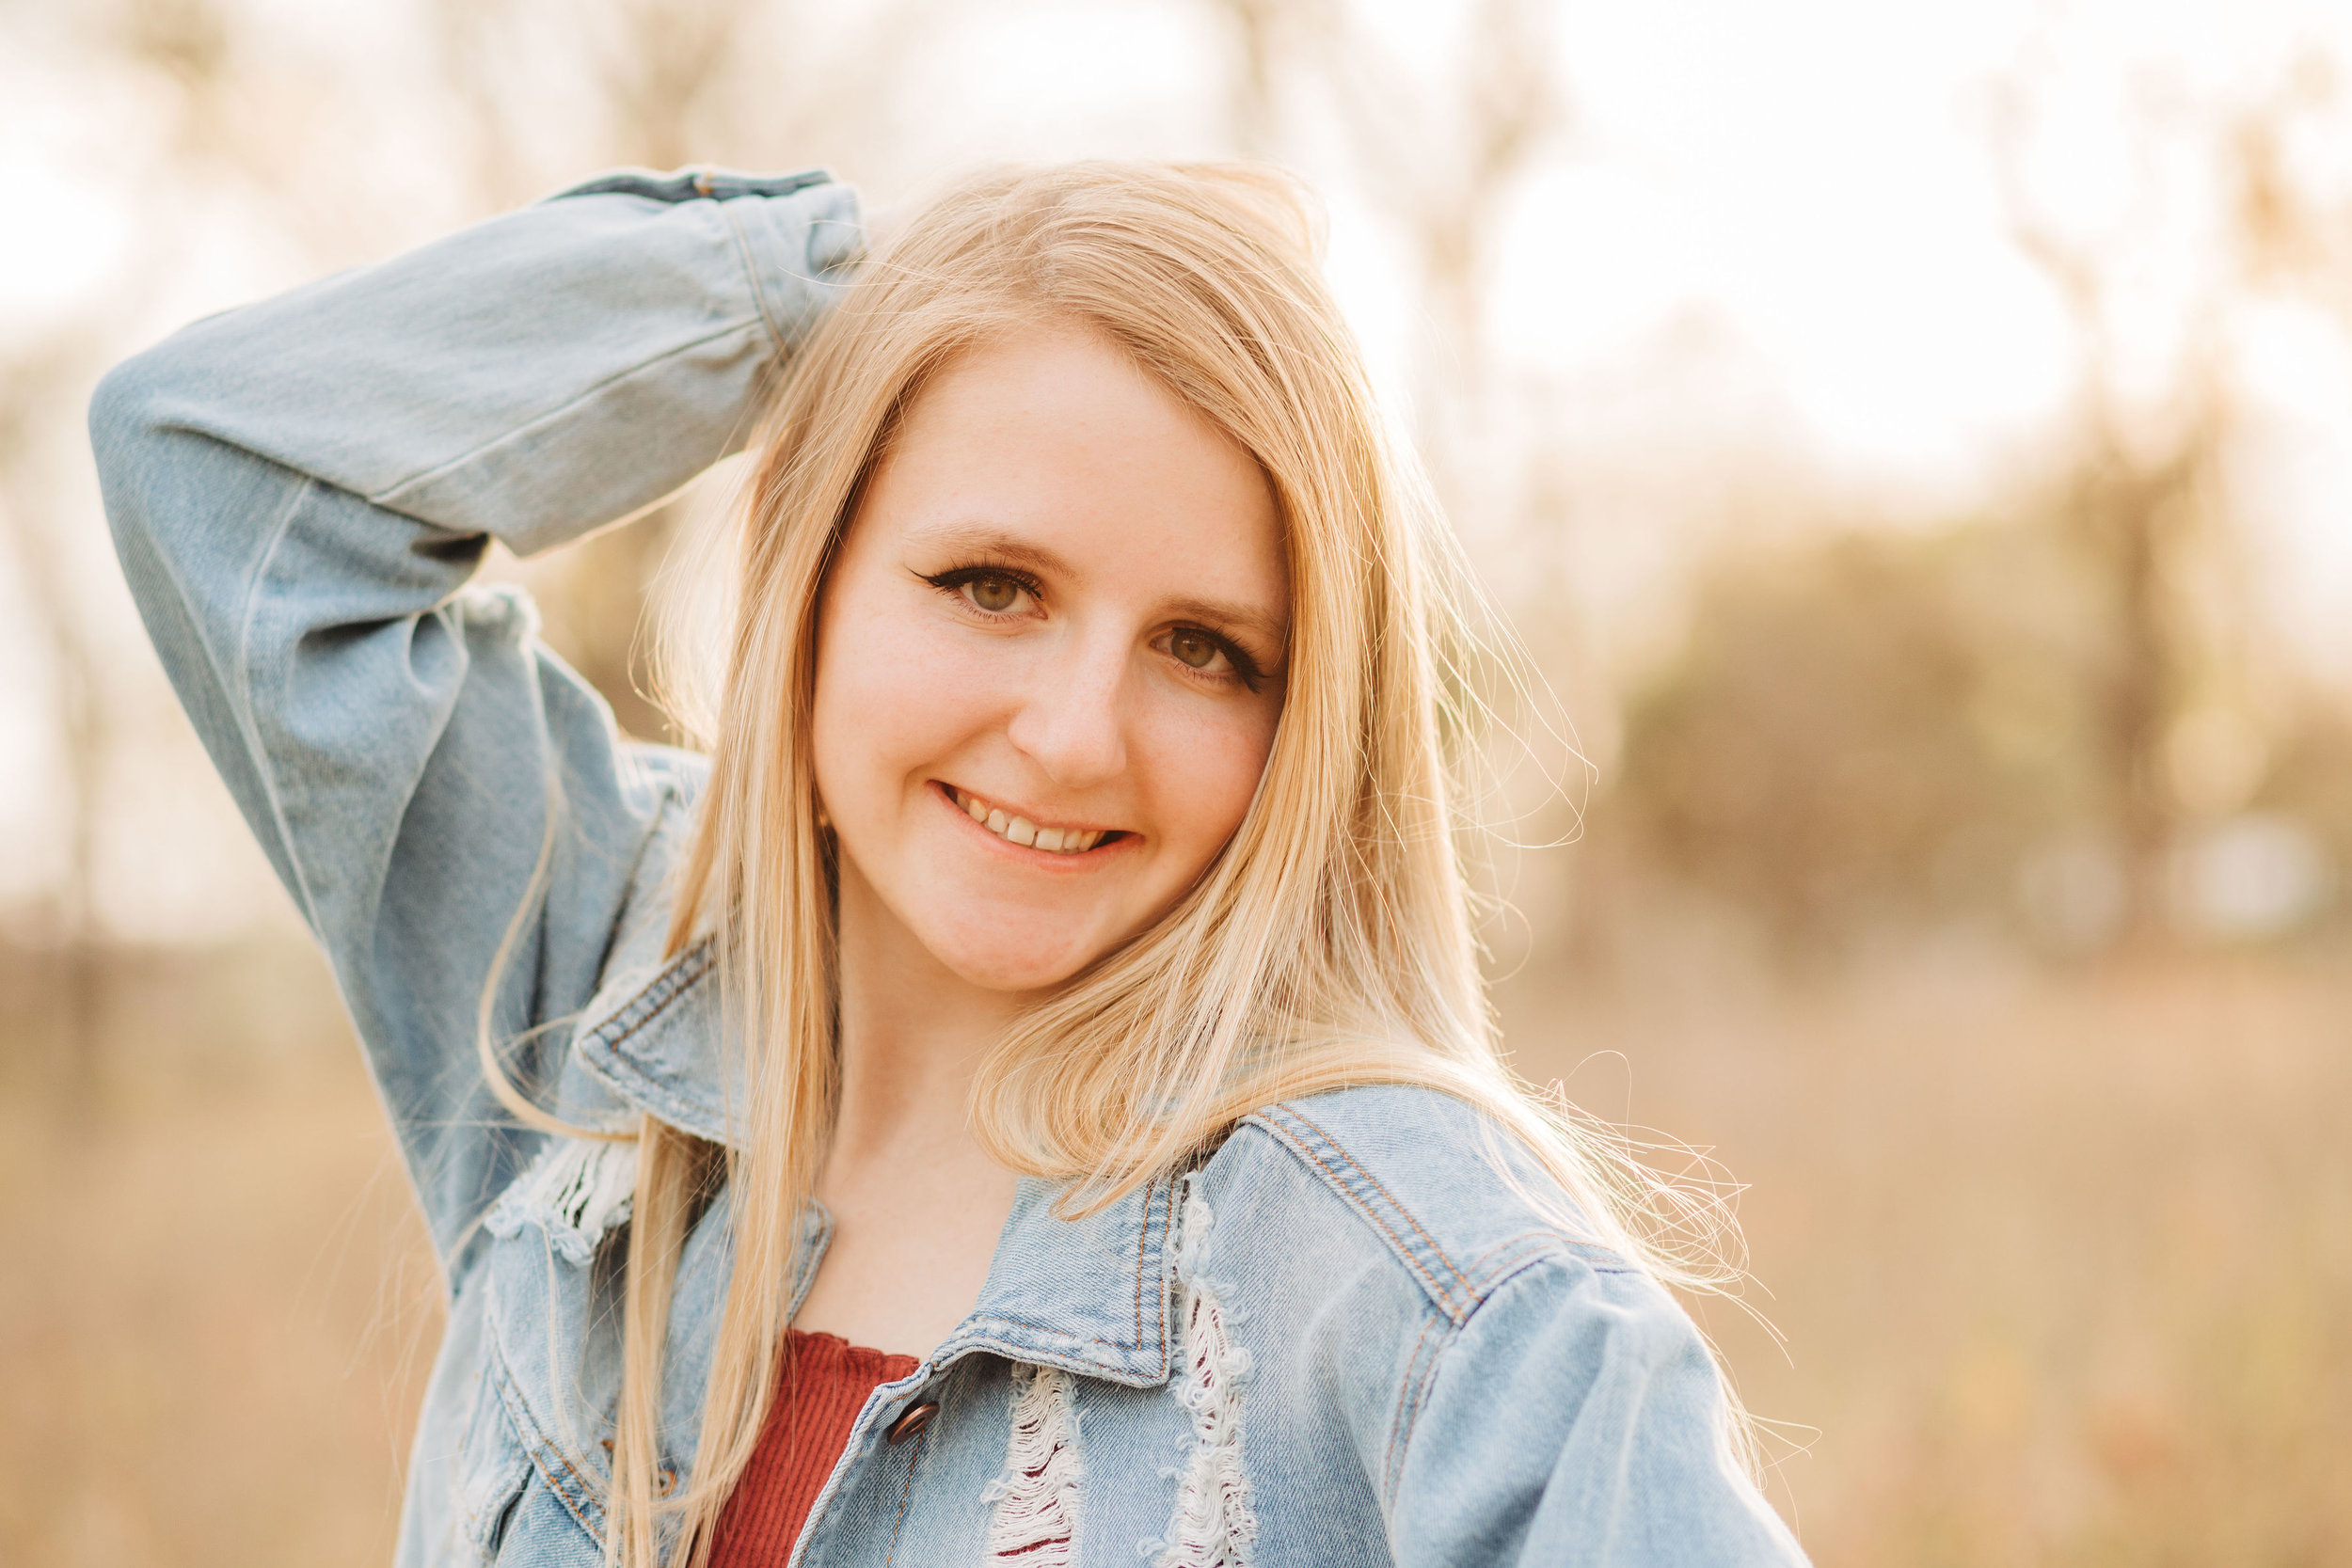 """Kellyn's Mom - """"Courtney took senior pictures for my daughter. She really made the session fun which allowed my daughter to relax. The result was phenomenal. So pleased with the pictures and the entire experience!"""""""